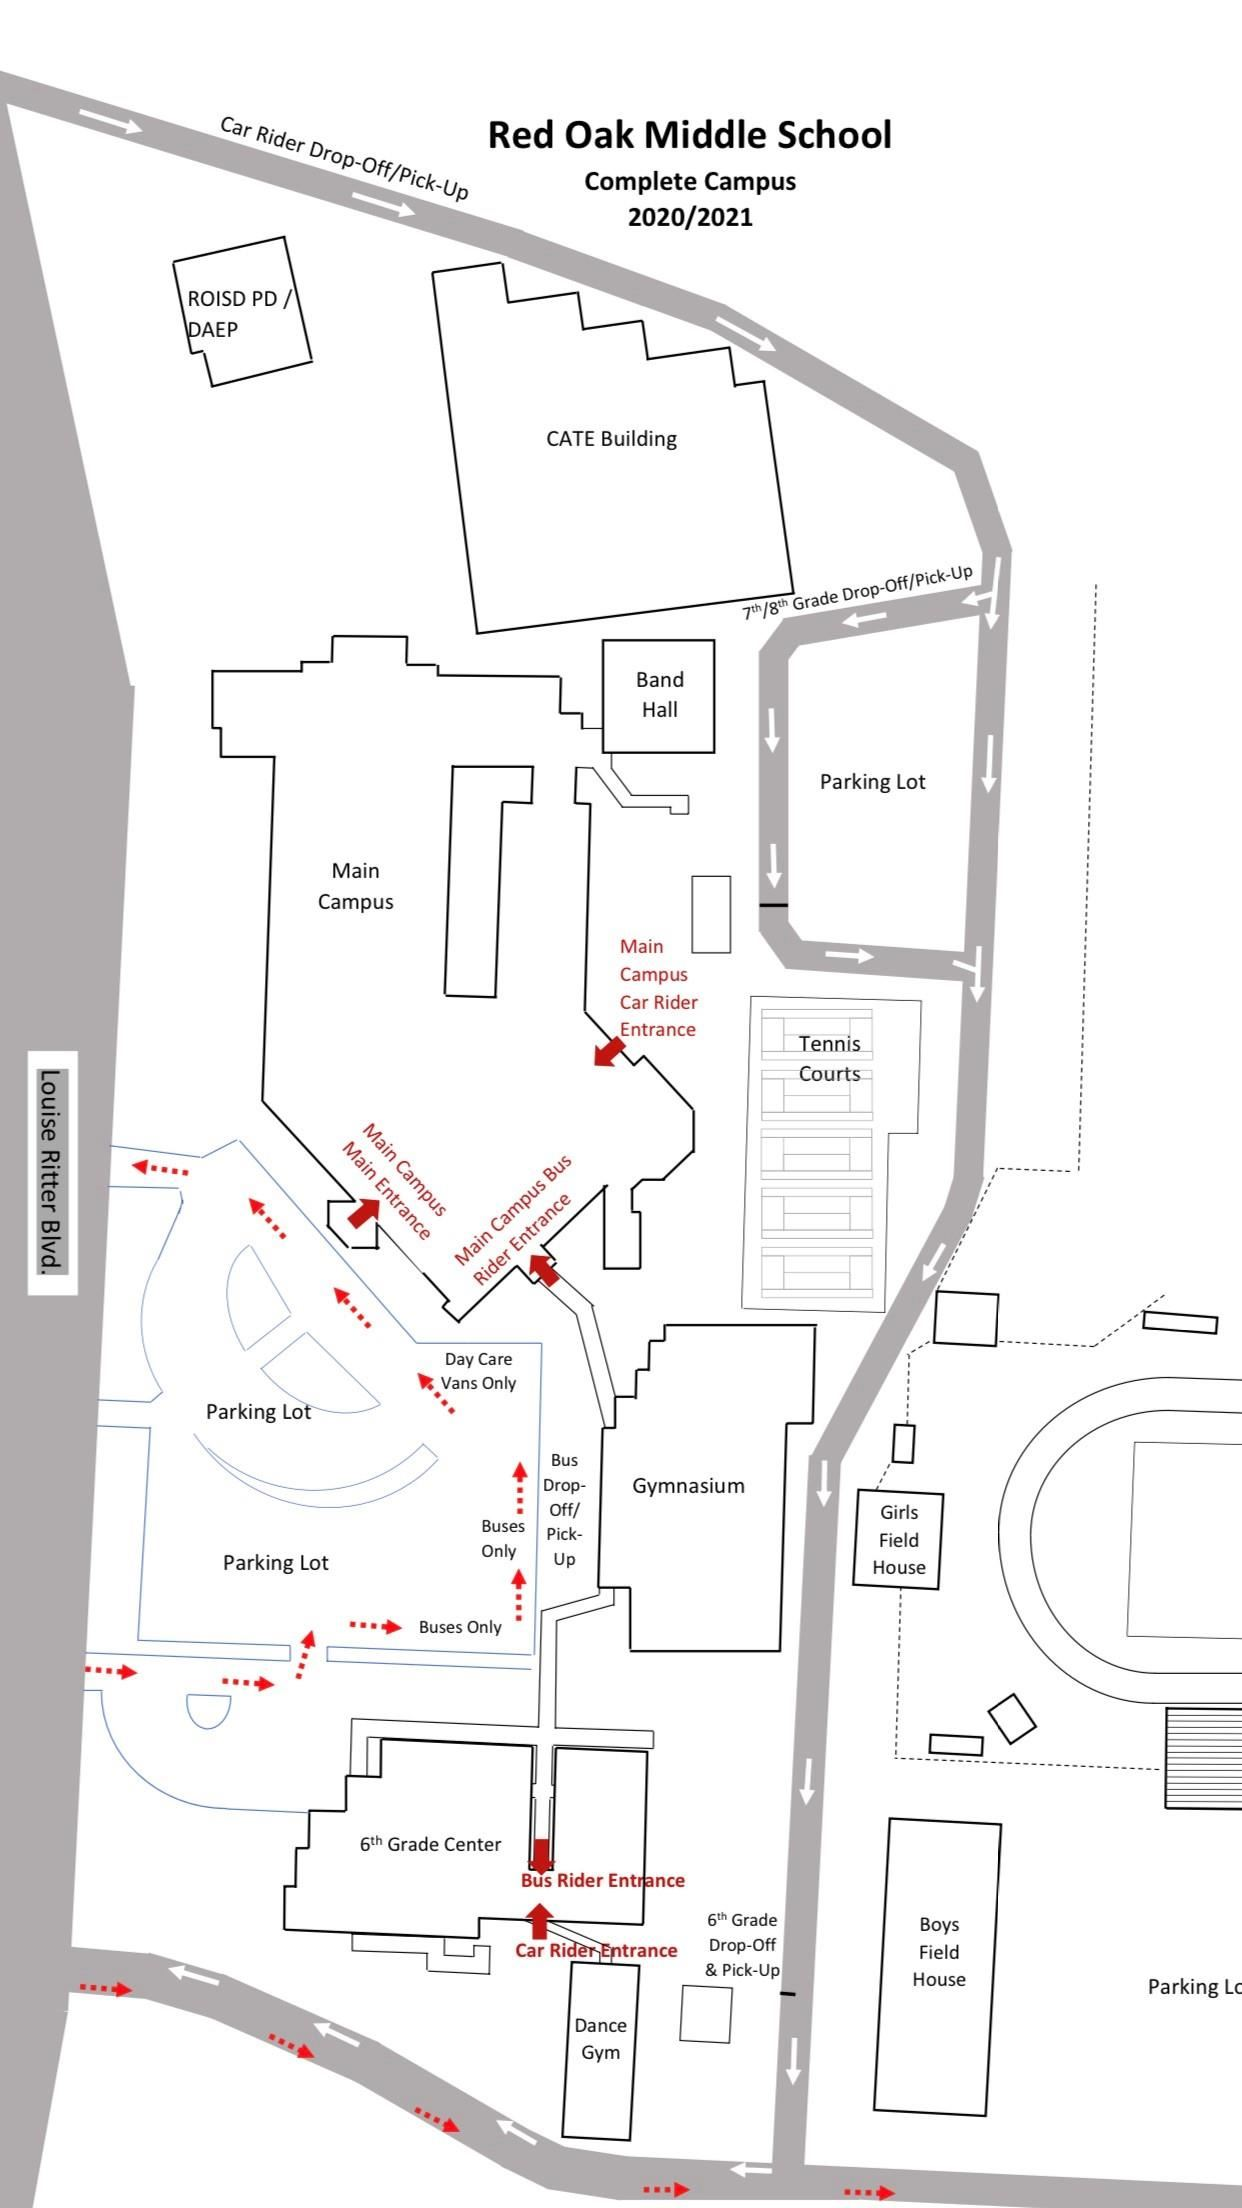 diagram showing traffic flow around entire ROMS campus for arrival procedures